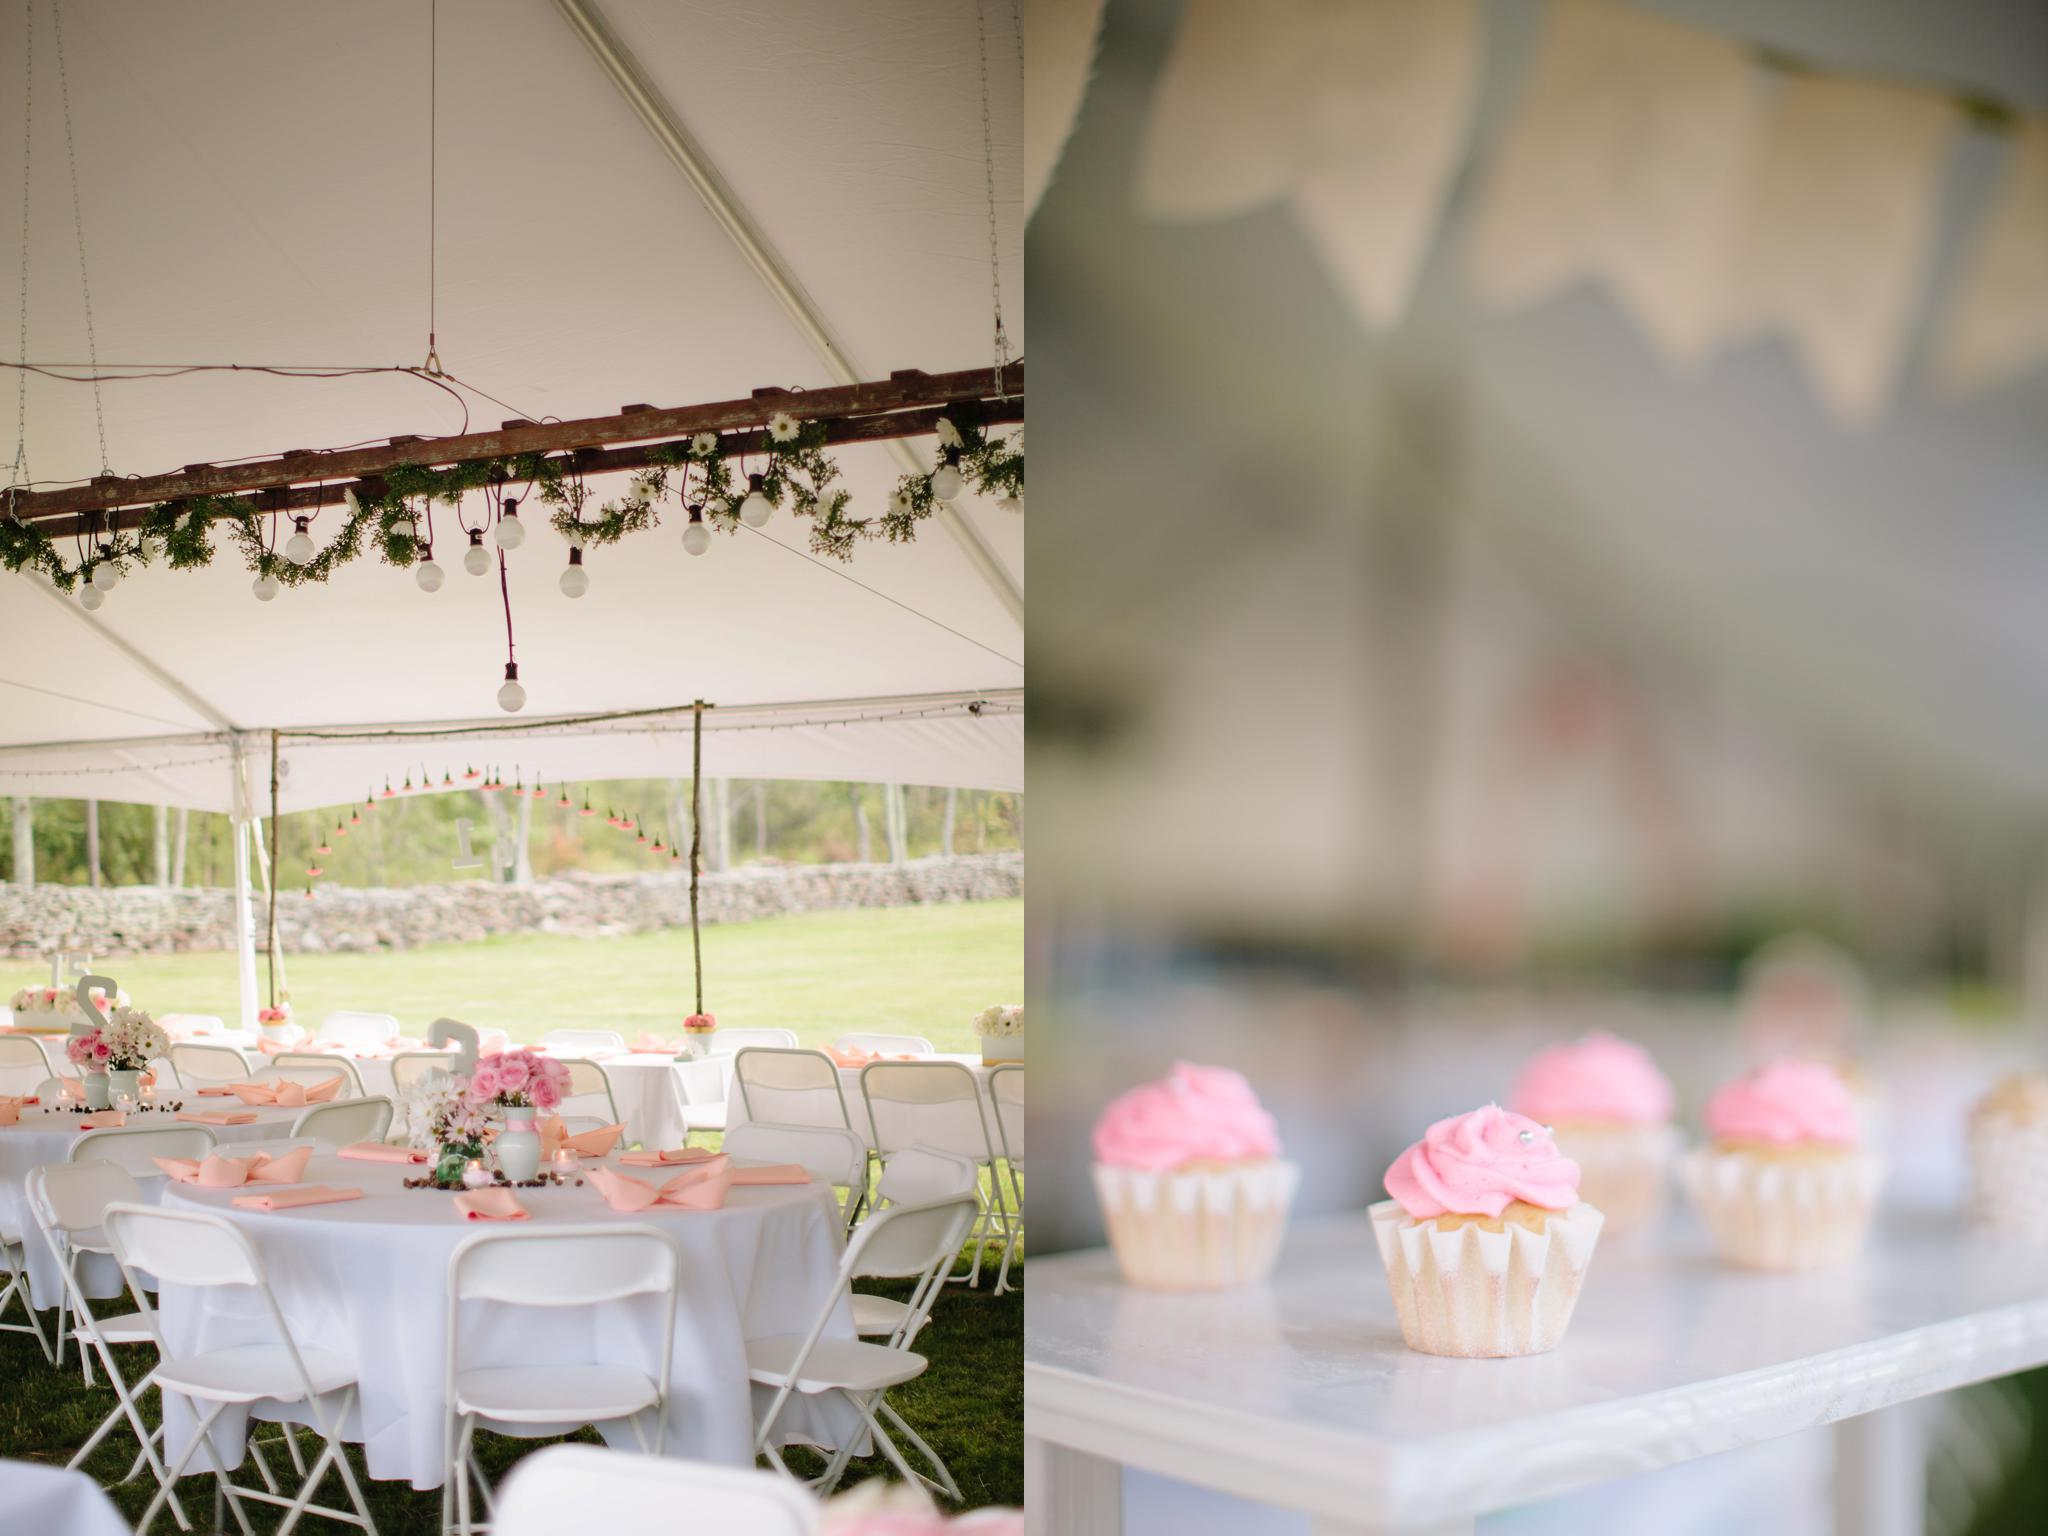 abington_pa_wedding_photographer_lackawanna_state_park_wedding_photos_what_the_fork_truck_catering_0821.jpg